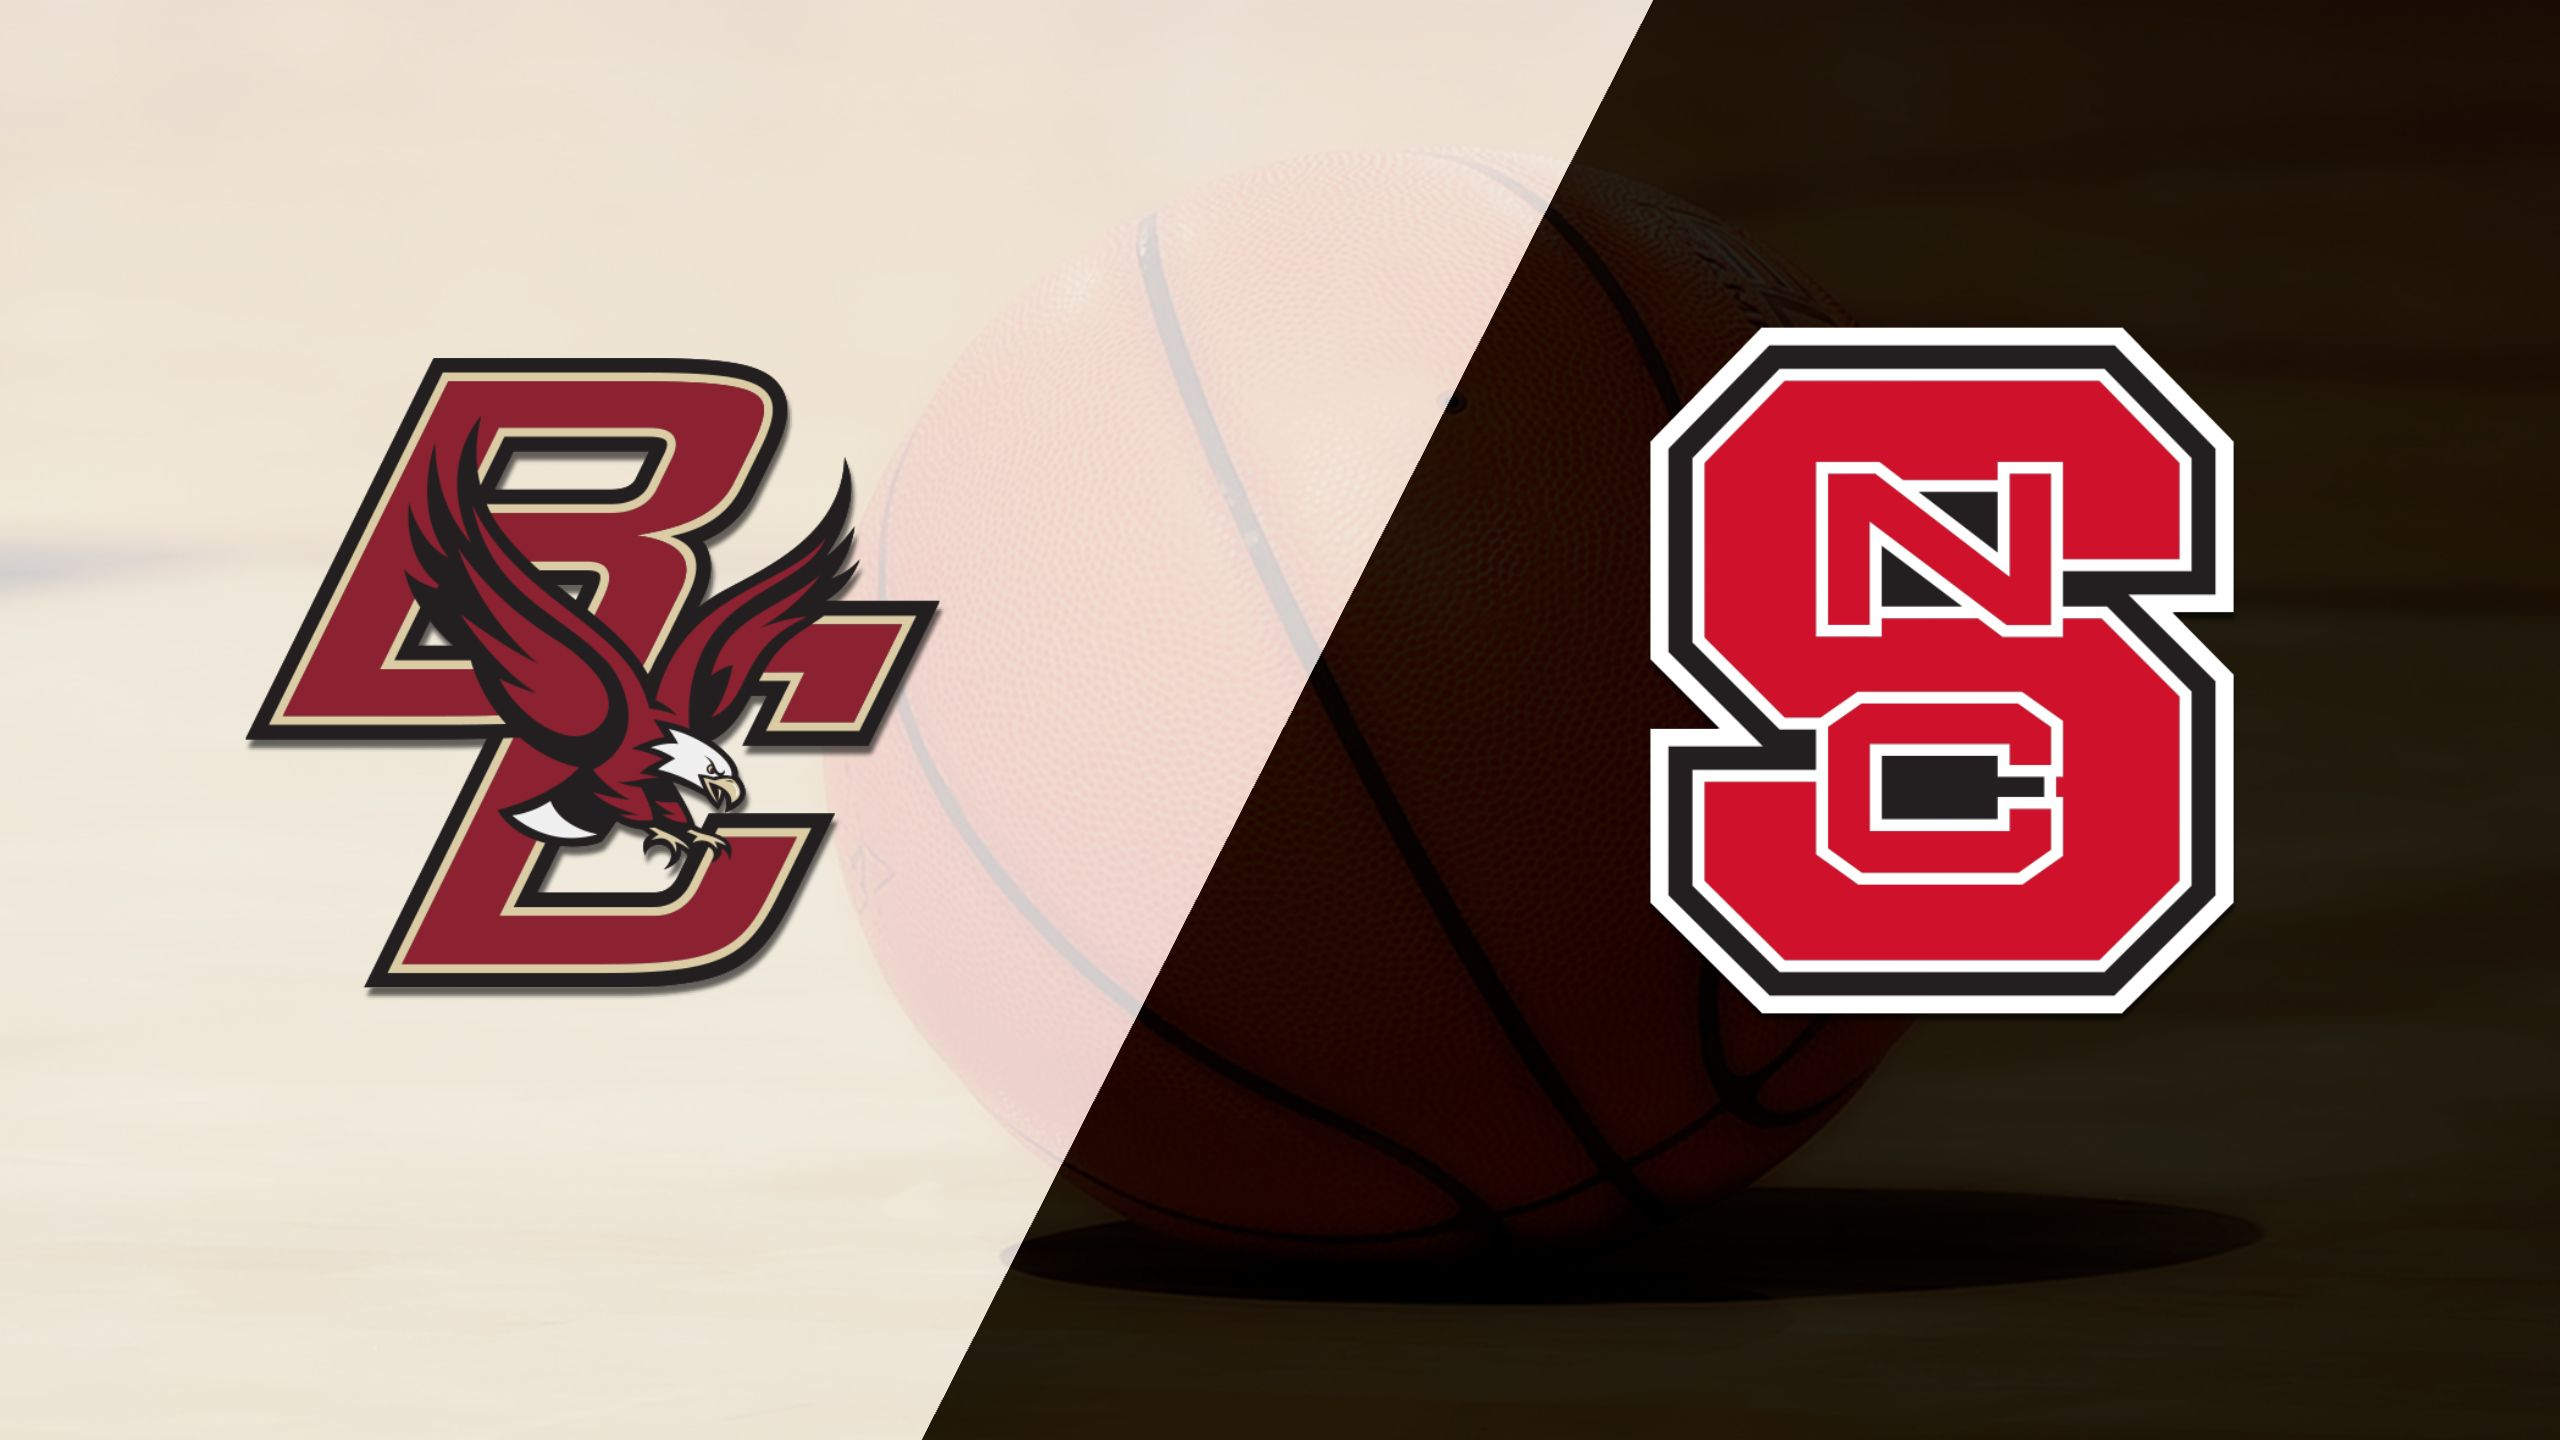 Boston College vs. NC State (M Basketball)